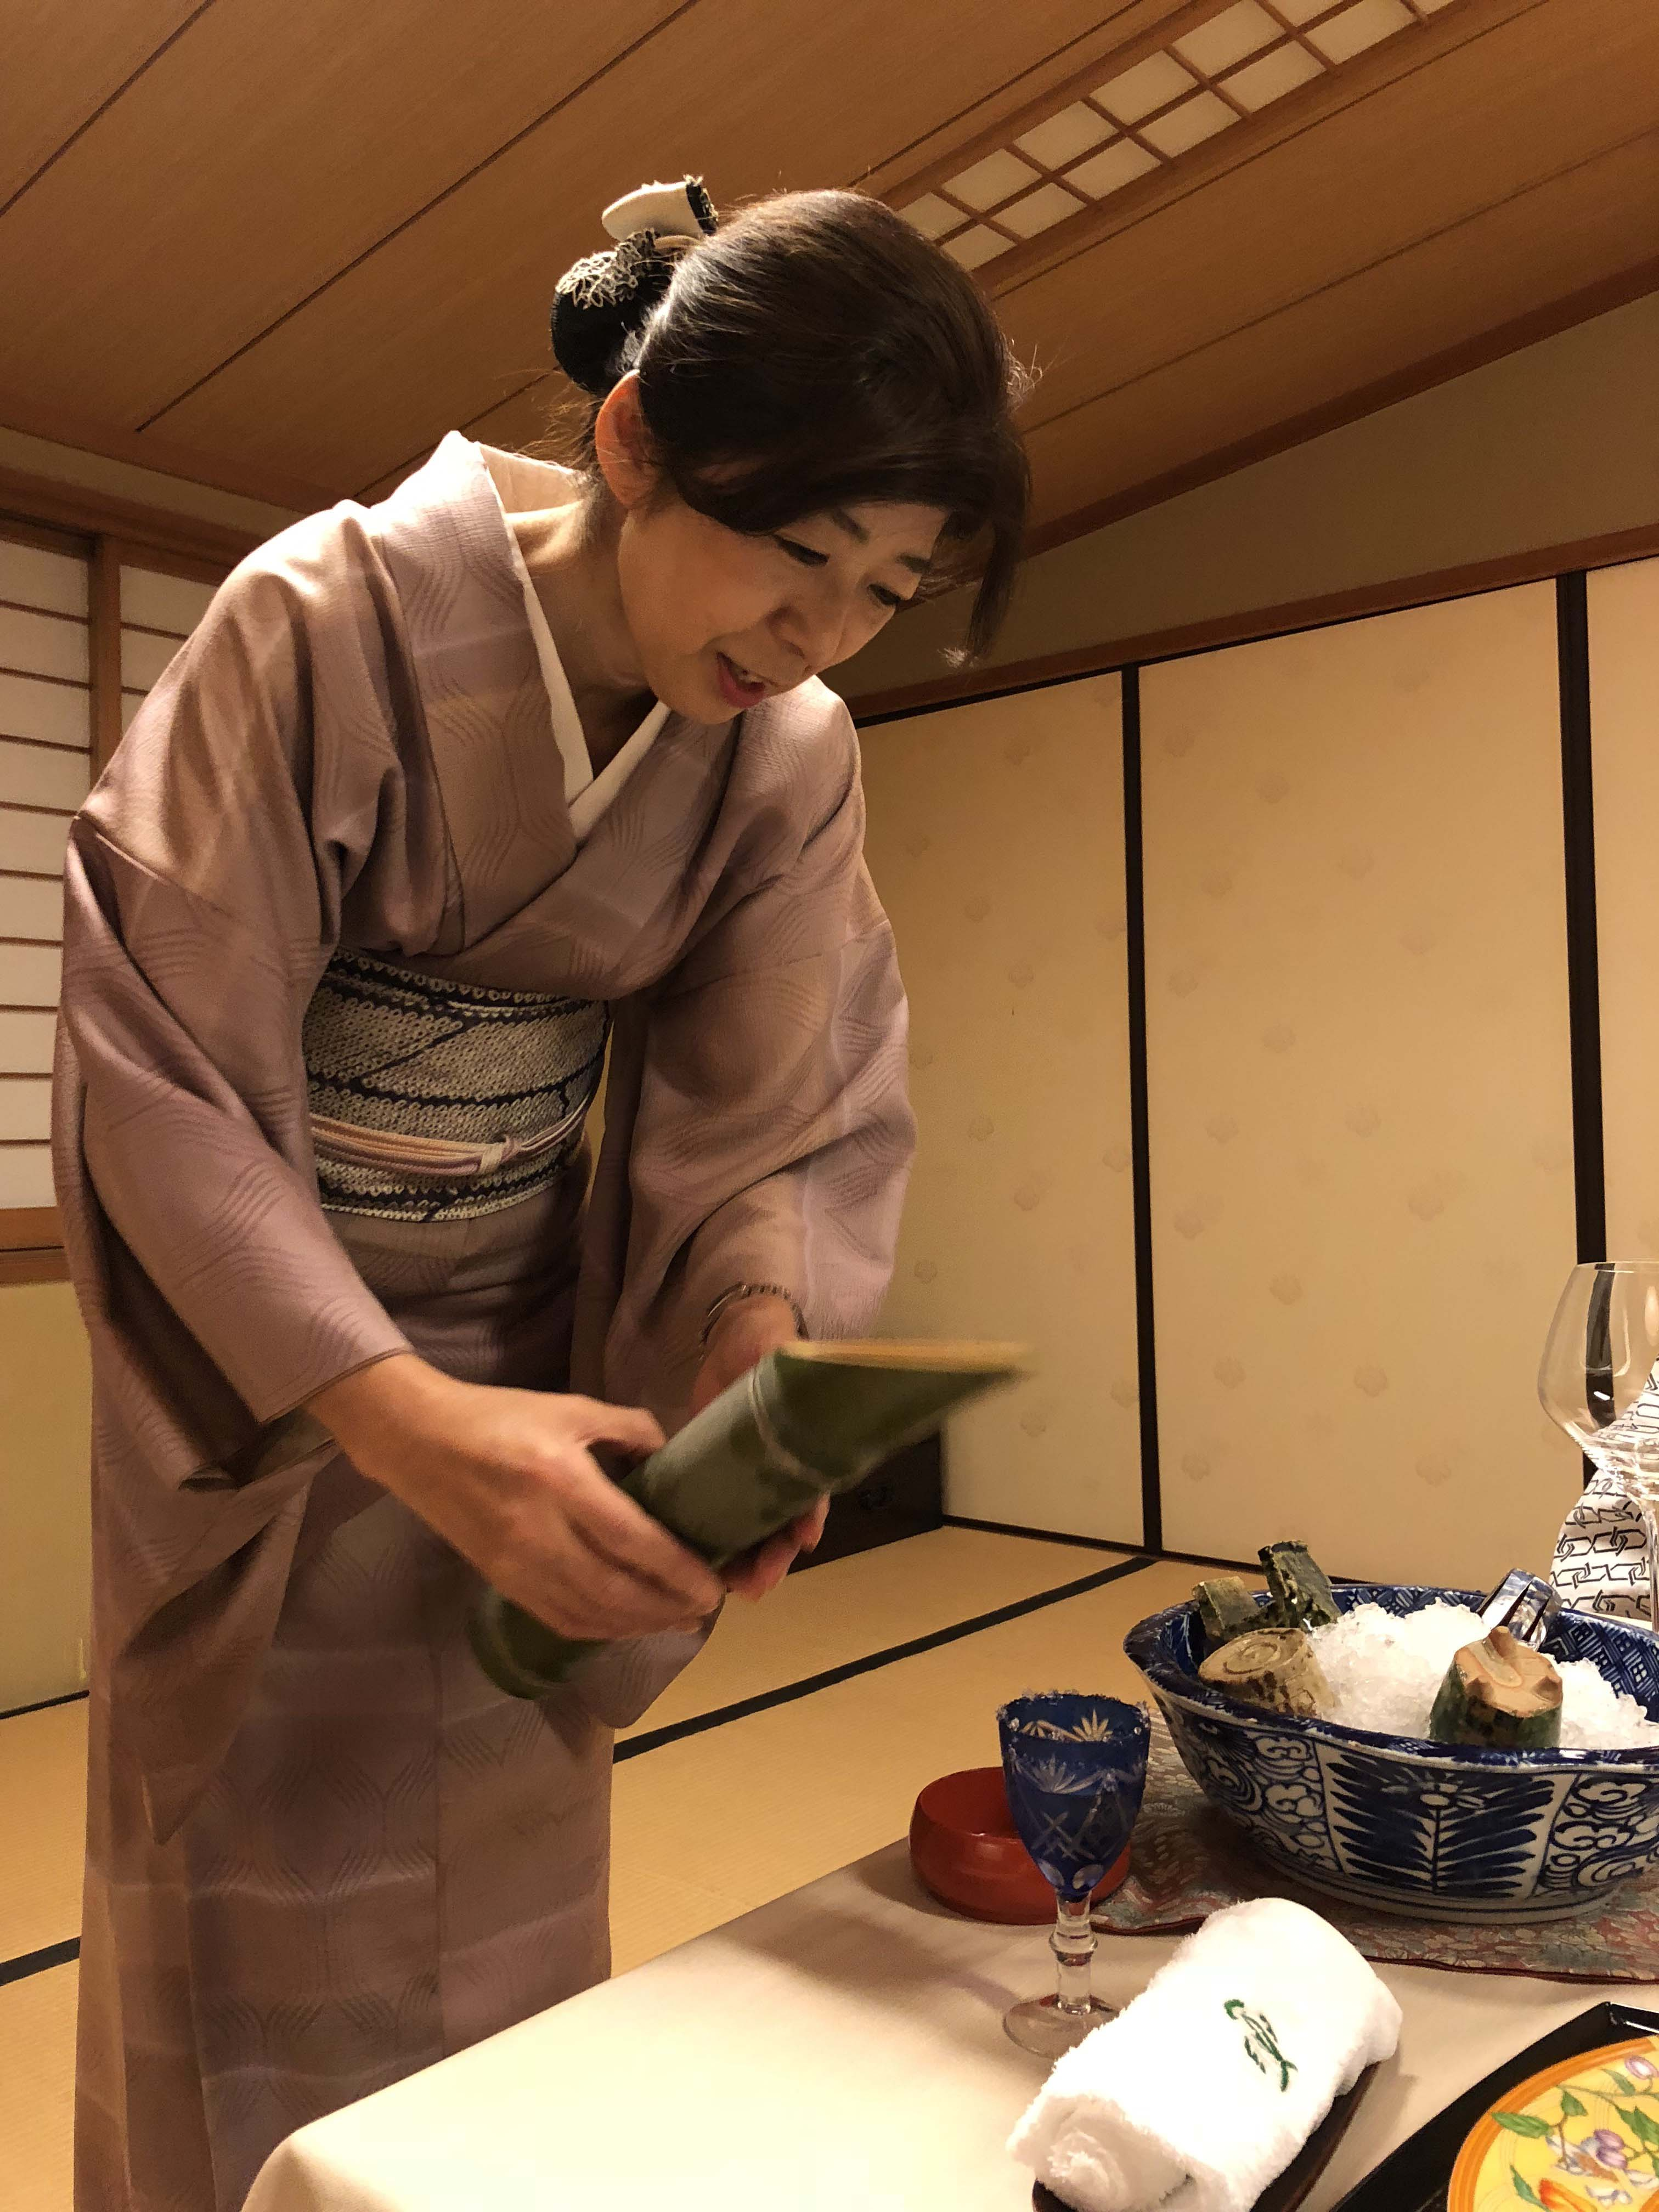 What is a Kaiseki Meal? Kaiseki is a traditional meal, where diners kneel on rice straw tatami mats and sample a series of small dishes made from seasonal ingredients, cooked in the most regional way possible in order to best bring about their flavors. - Photo by Outside Suburbia